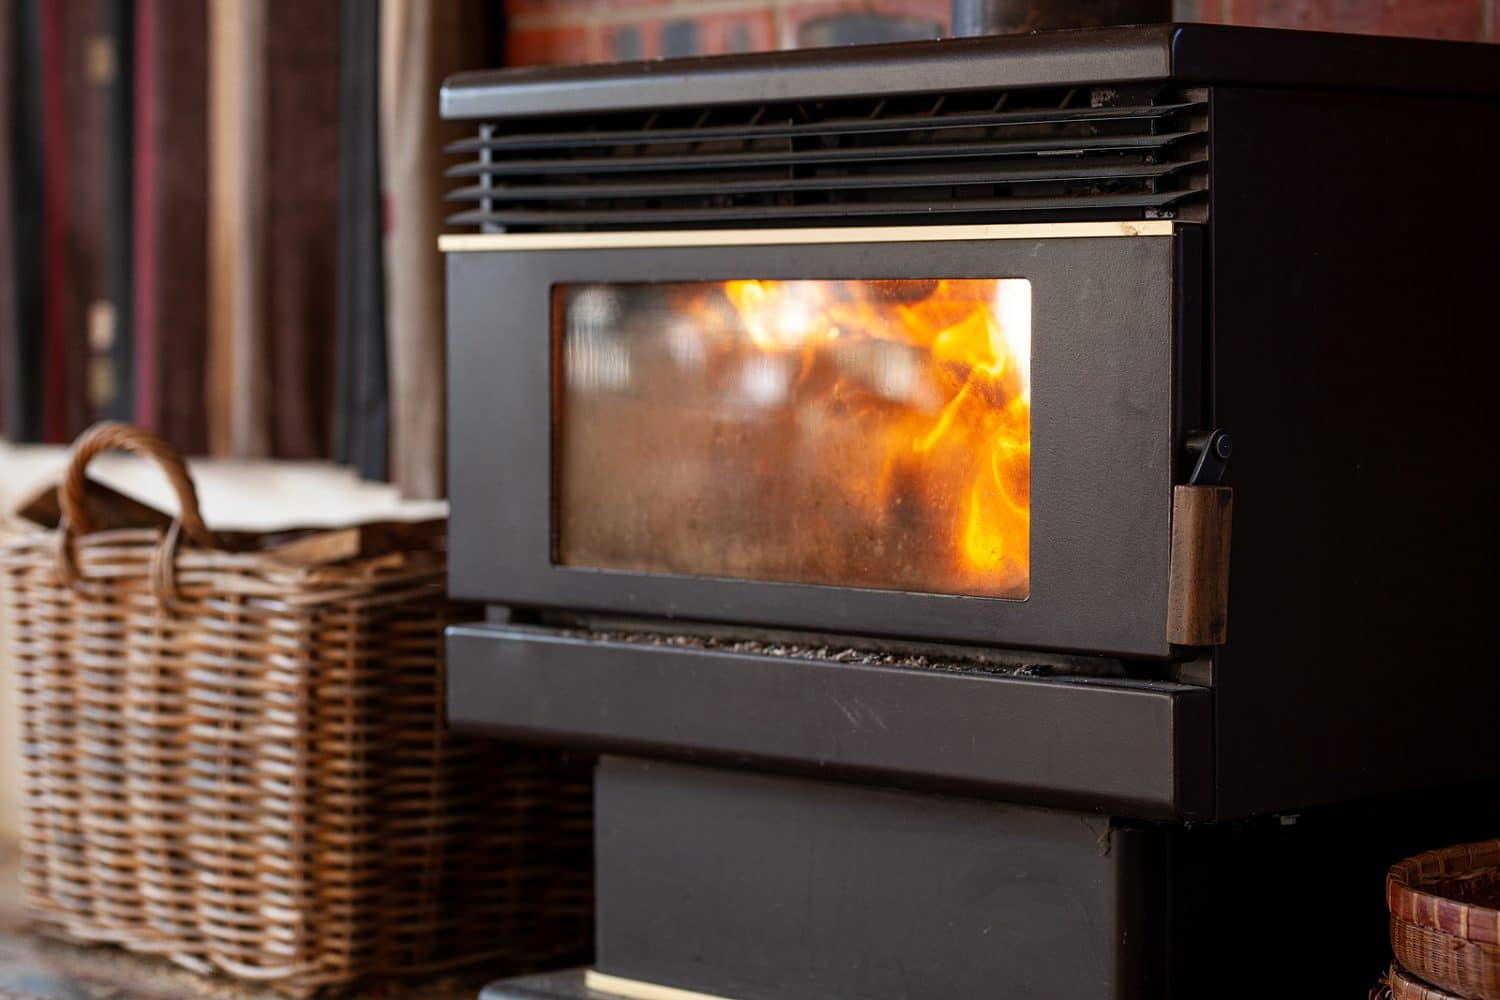 Black Metal Stove Fireplace With A Burning Flame Behind A Glass